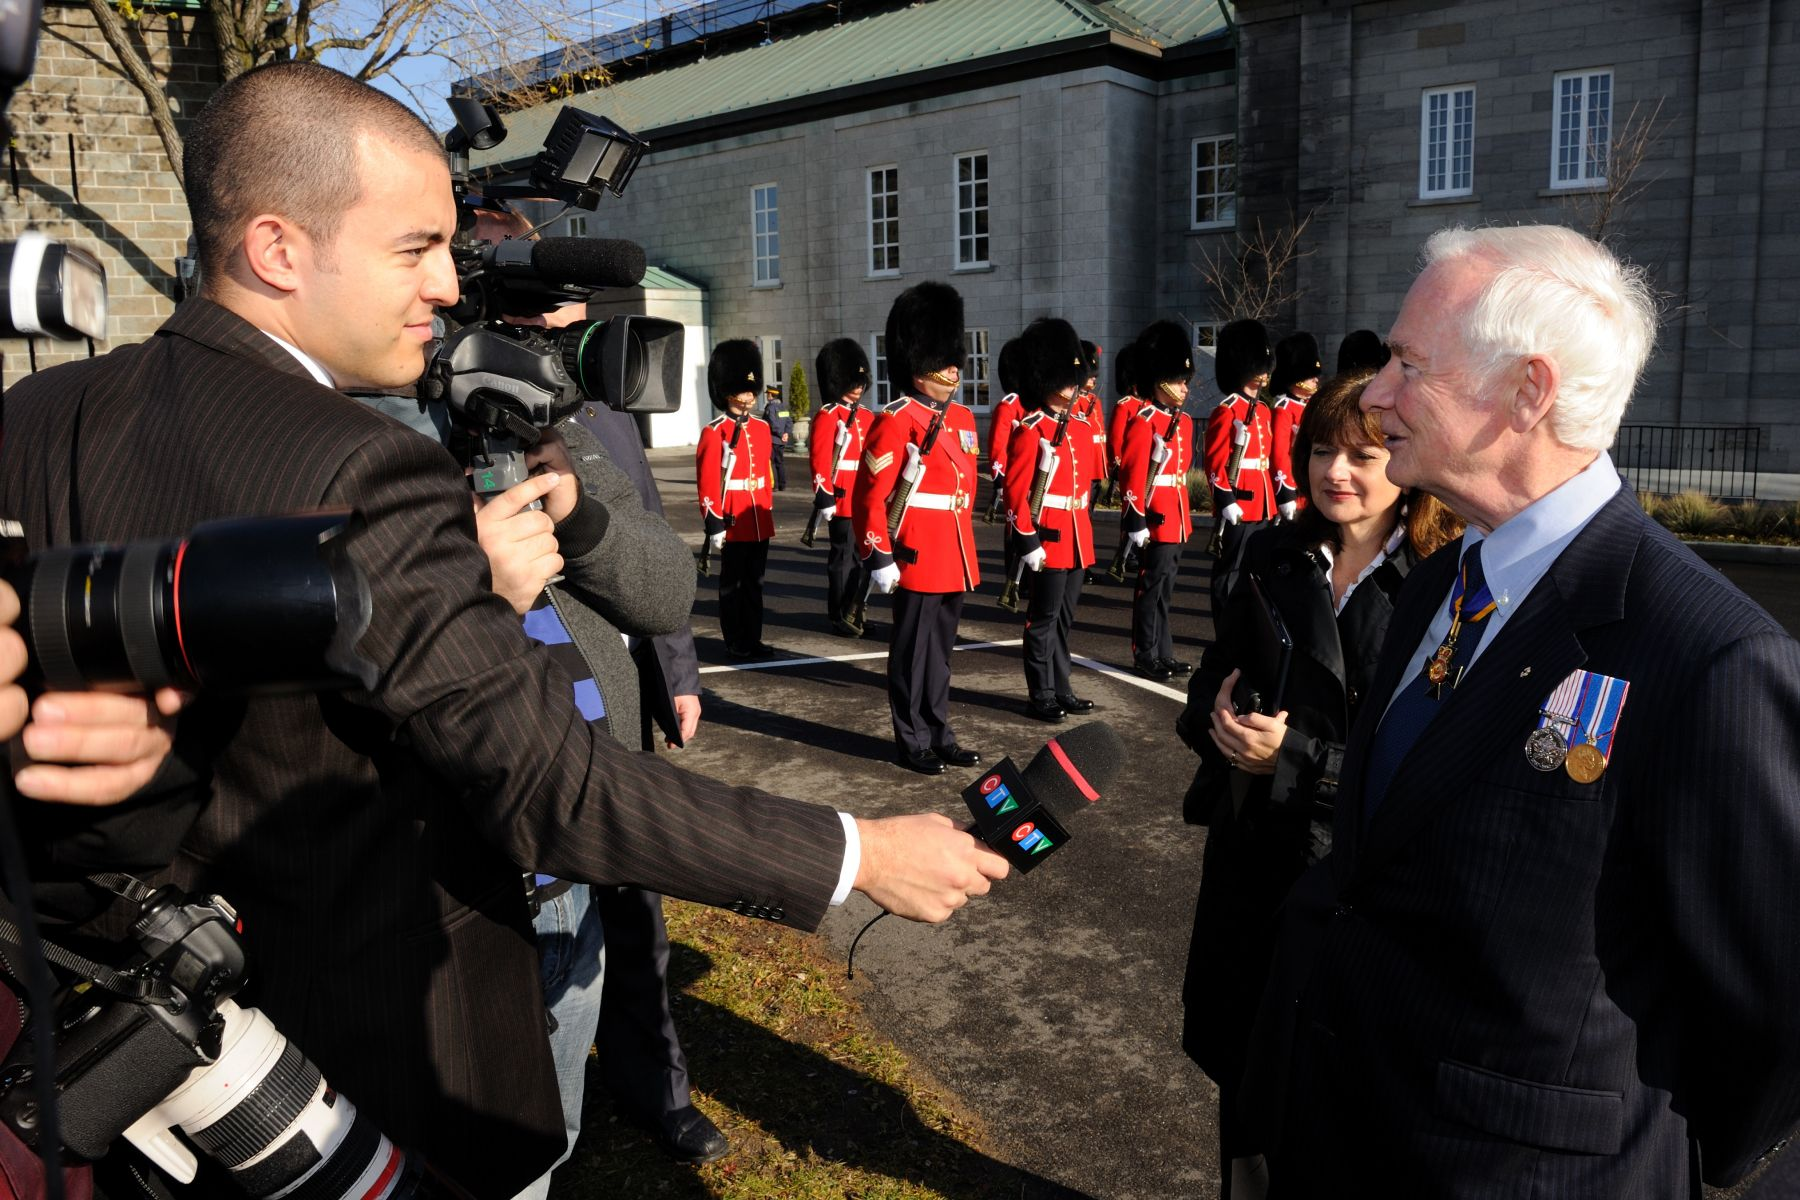 Following the inspection, the Governor General took the time to interact with the Québec media.